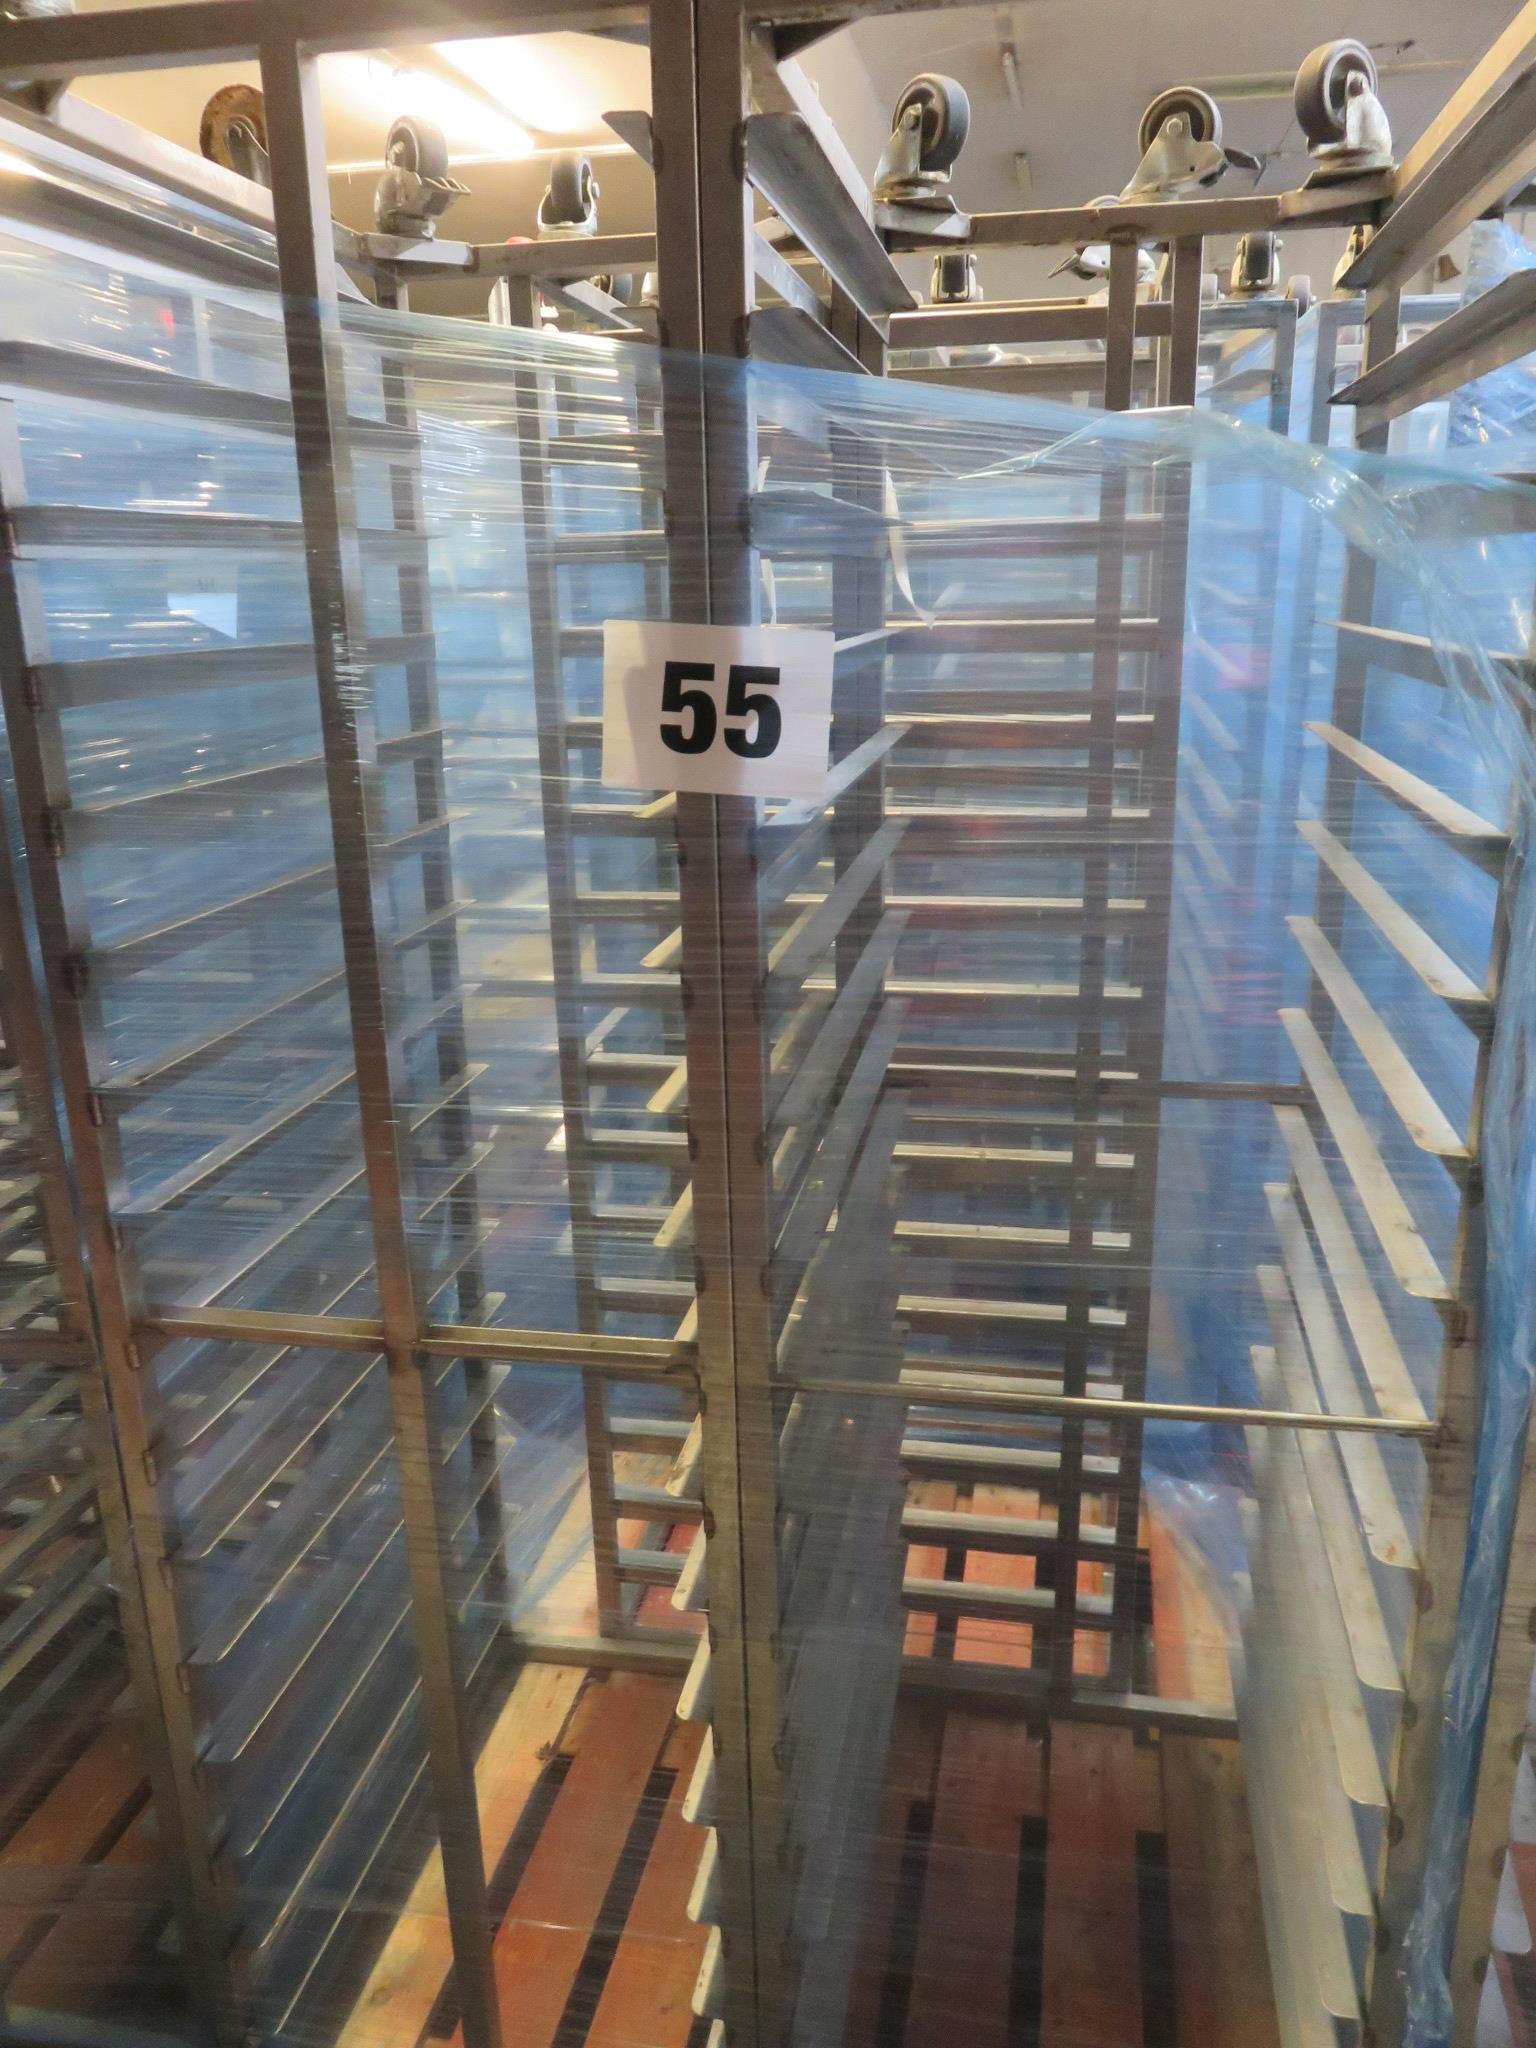 Lot 55 - 3 x S/s Racks capable of taking 16 trays. Approx.430 x 650 x 1800mm high. Mobile. LO £30